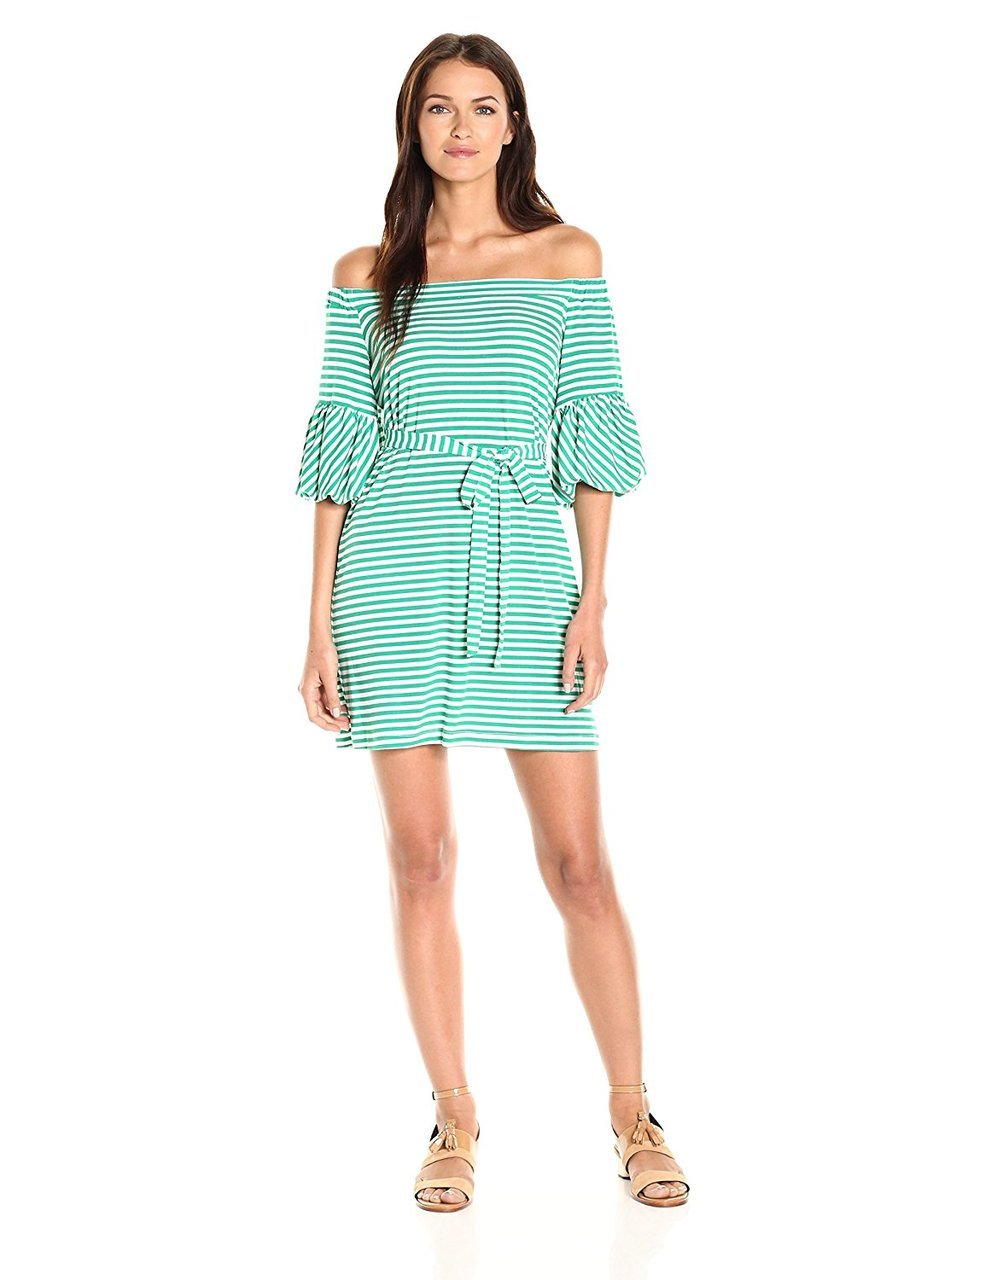 Donna Morgan - D5259M Striped Off Shoulder Bell Sleeve Dress in Green and White